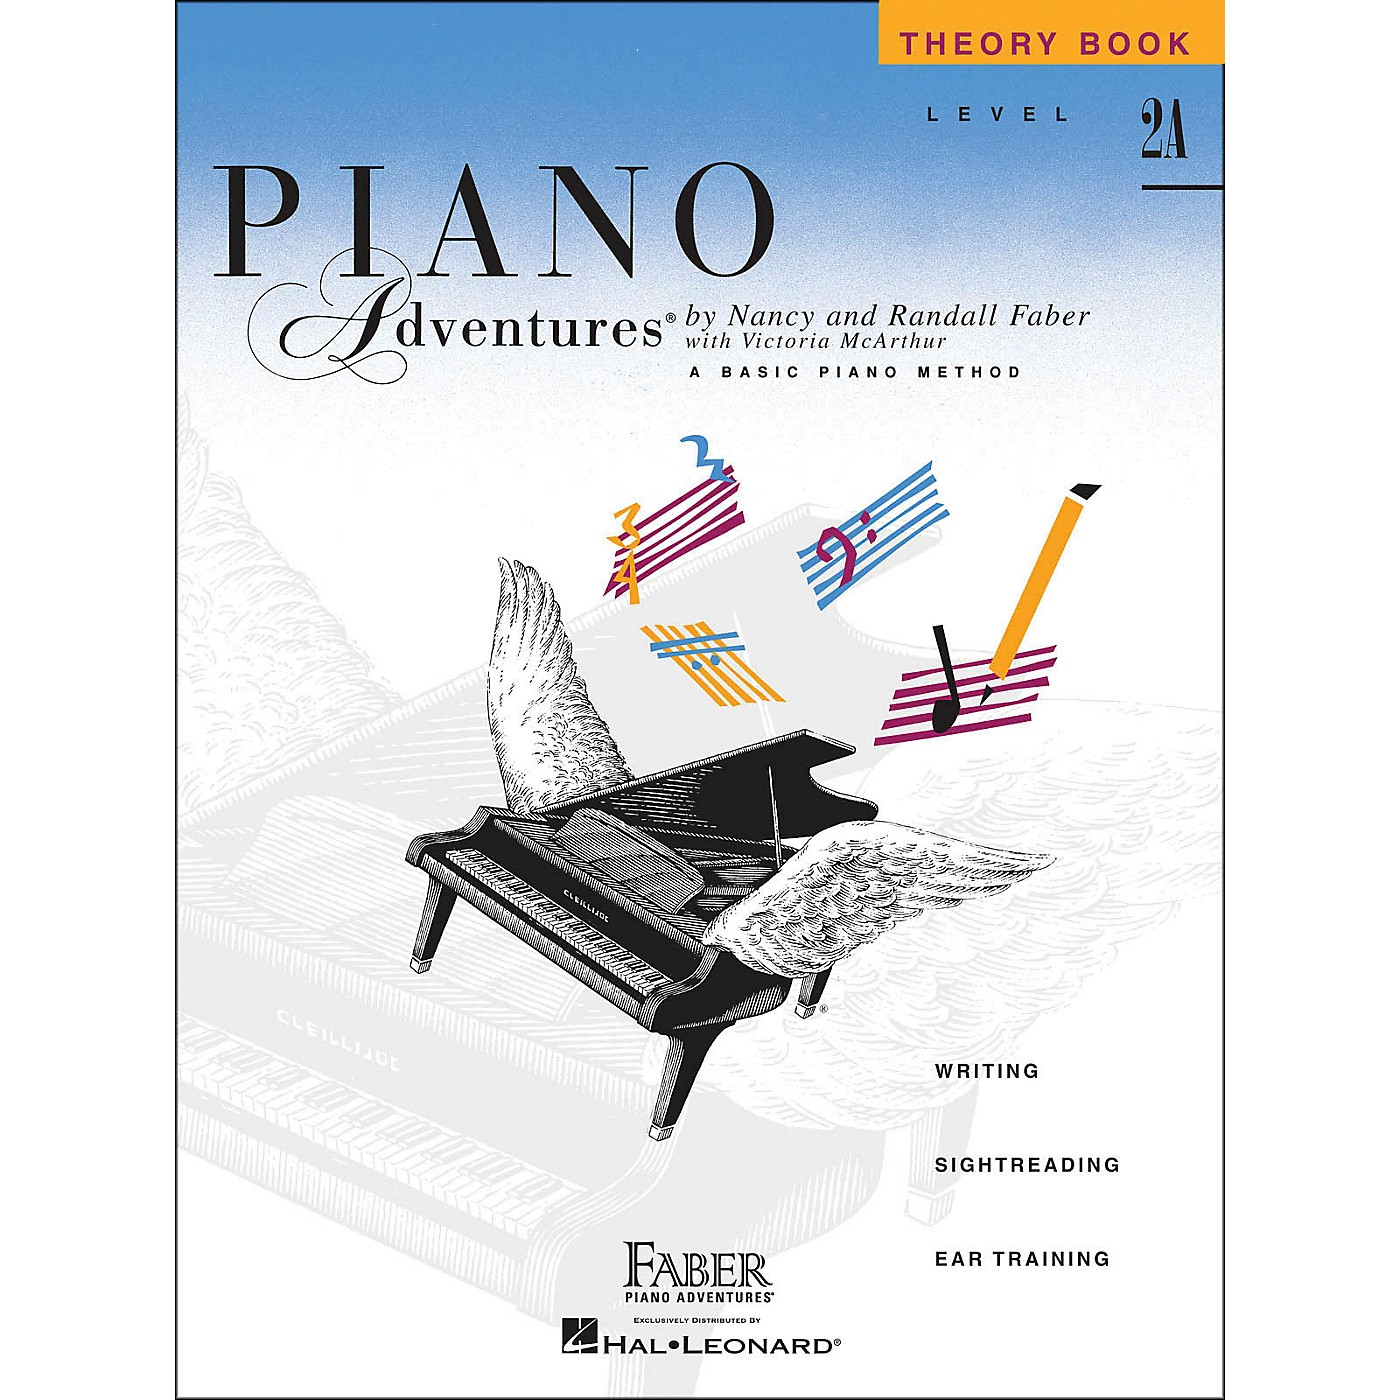 Faber Piano Adventures Piano Adventures Theory Book Level 2A Basic Piano Method thumbnail